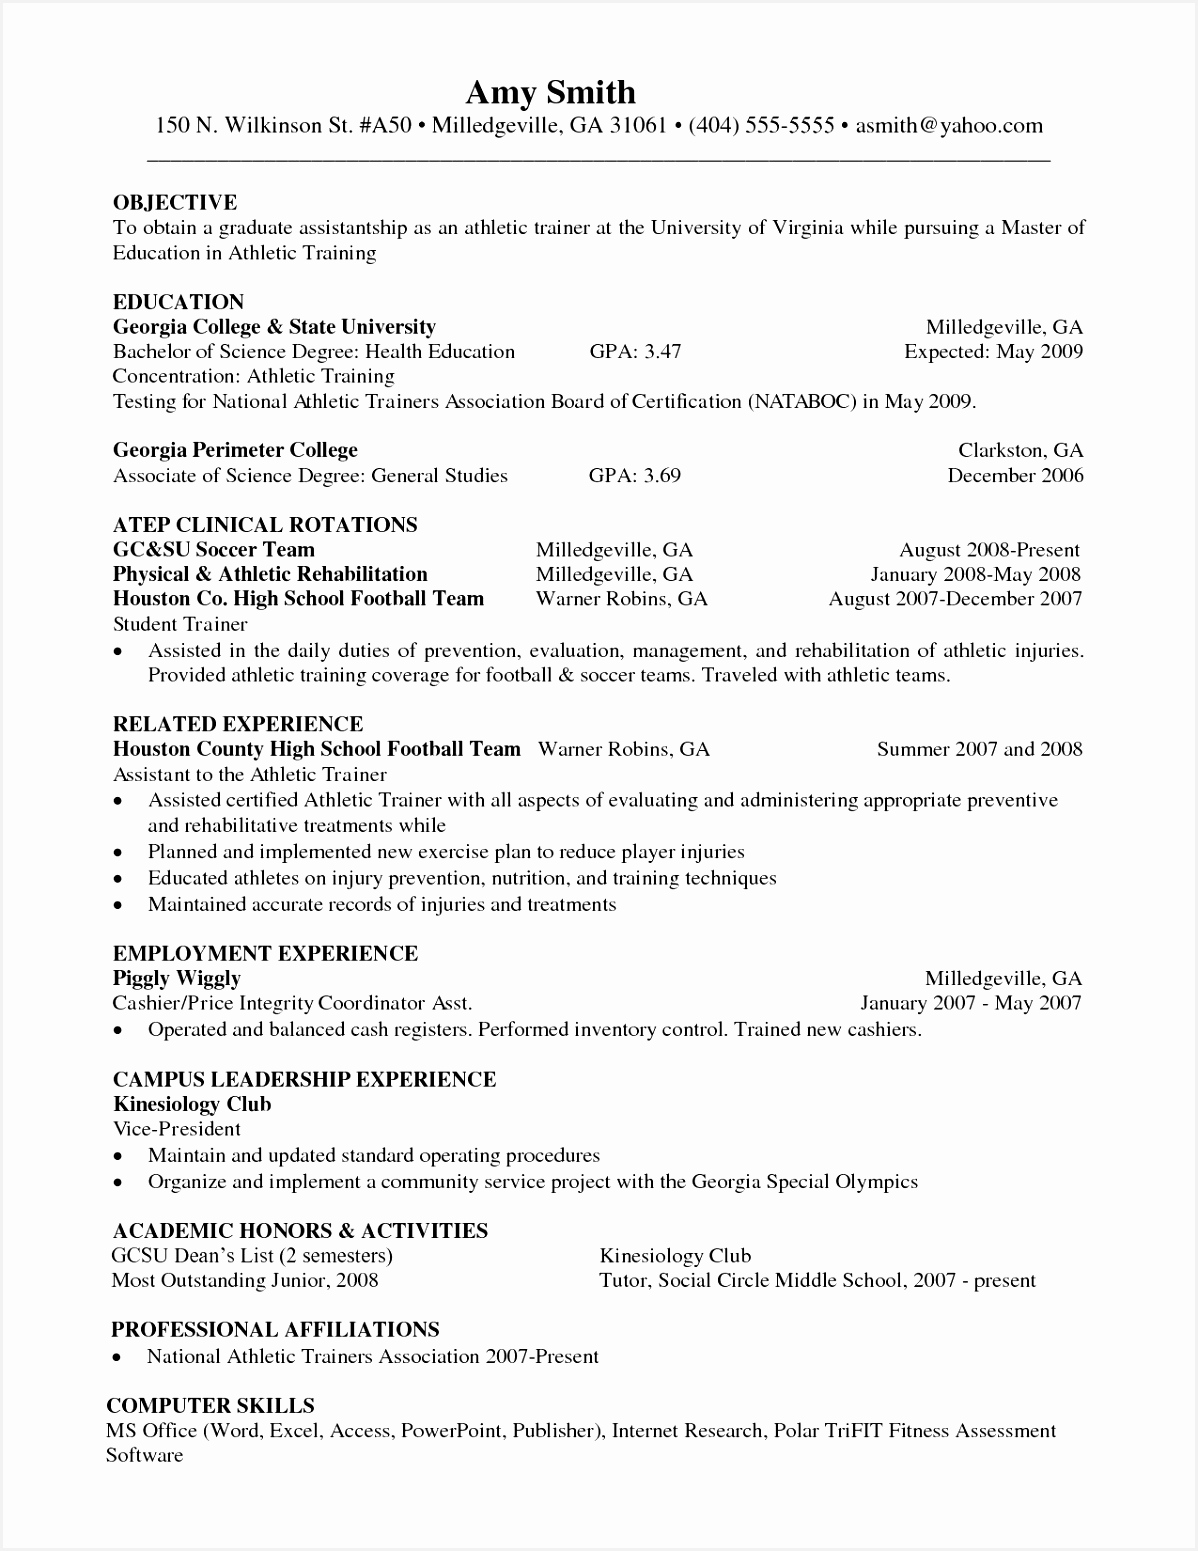 Resumes format for Freshers 3hian Lovely Resume format for Internship Engineering Elegant Luxury Grapher Of Resumes format for Freshers C6sag Lovely Resume for A Waitress Design Resume Samples New Waitress Resume 0d